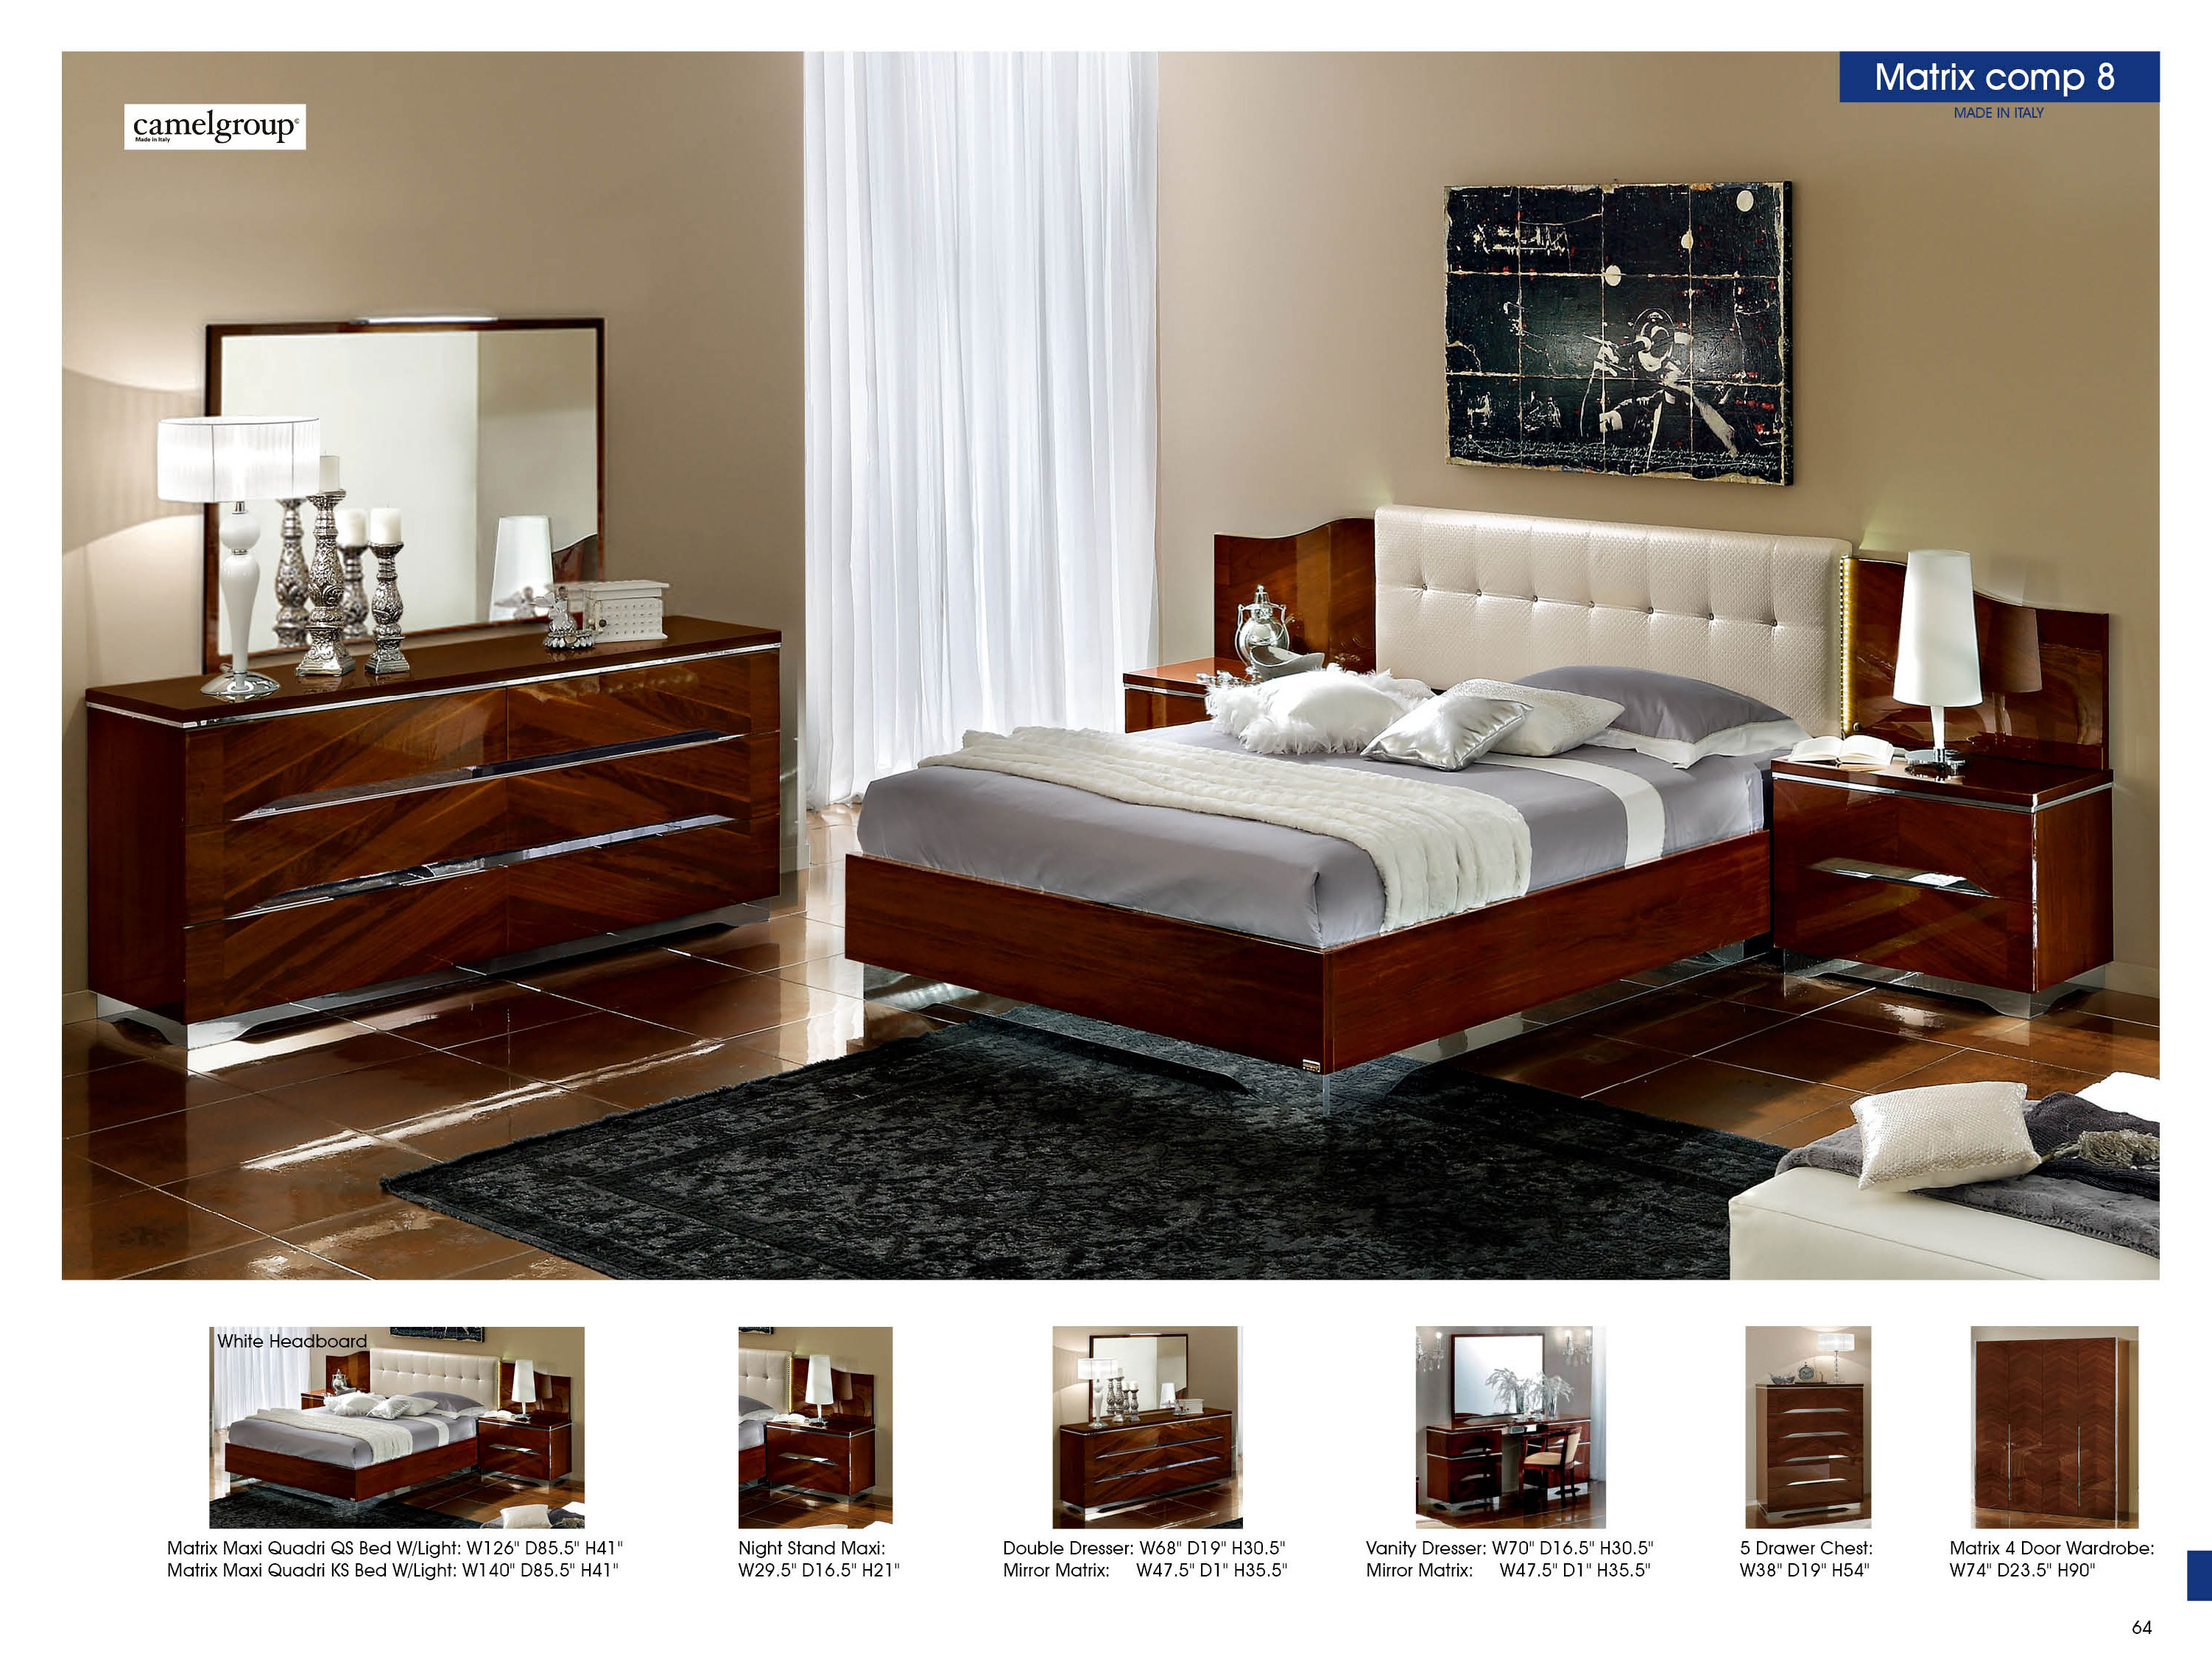 italian bedroom furniture image9. 30 Off Matrix Composition 8 W White Headboard Camelgroup Italy Italian Bedroom Furniture Image9